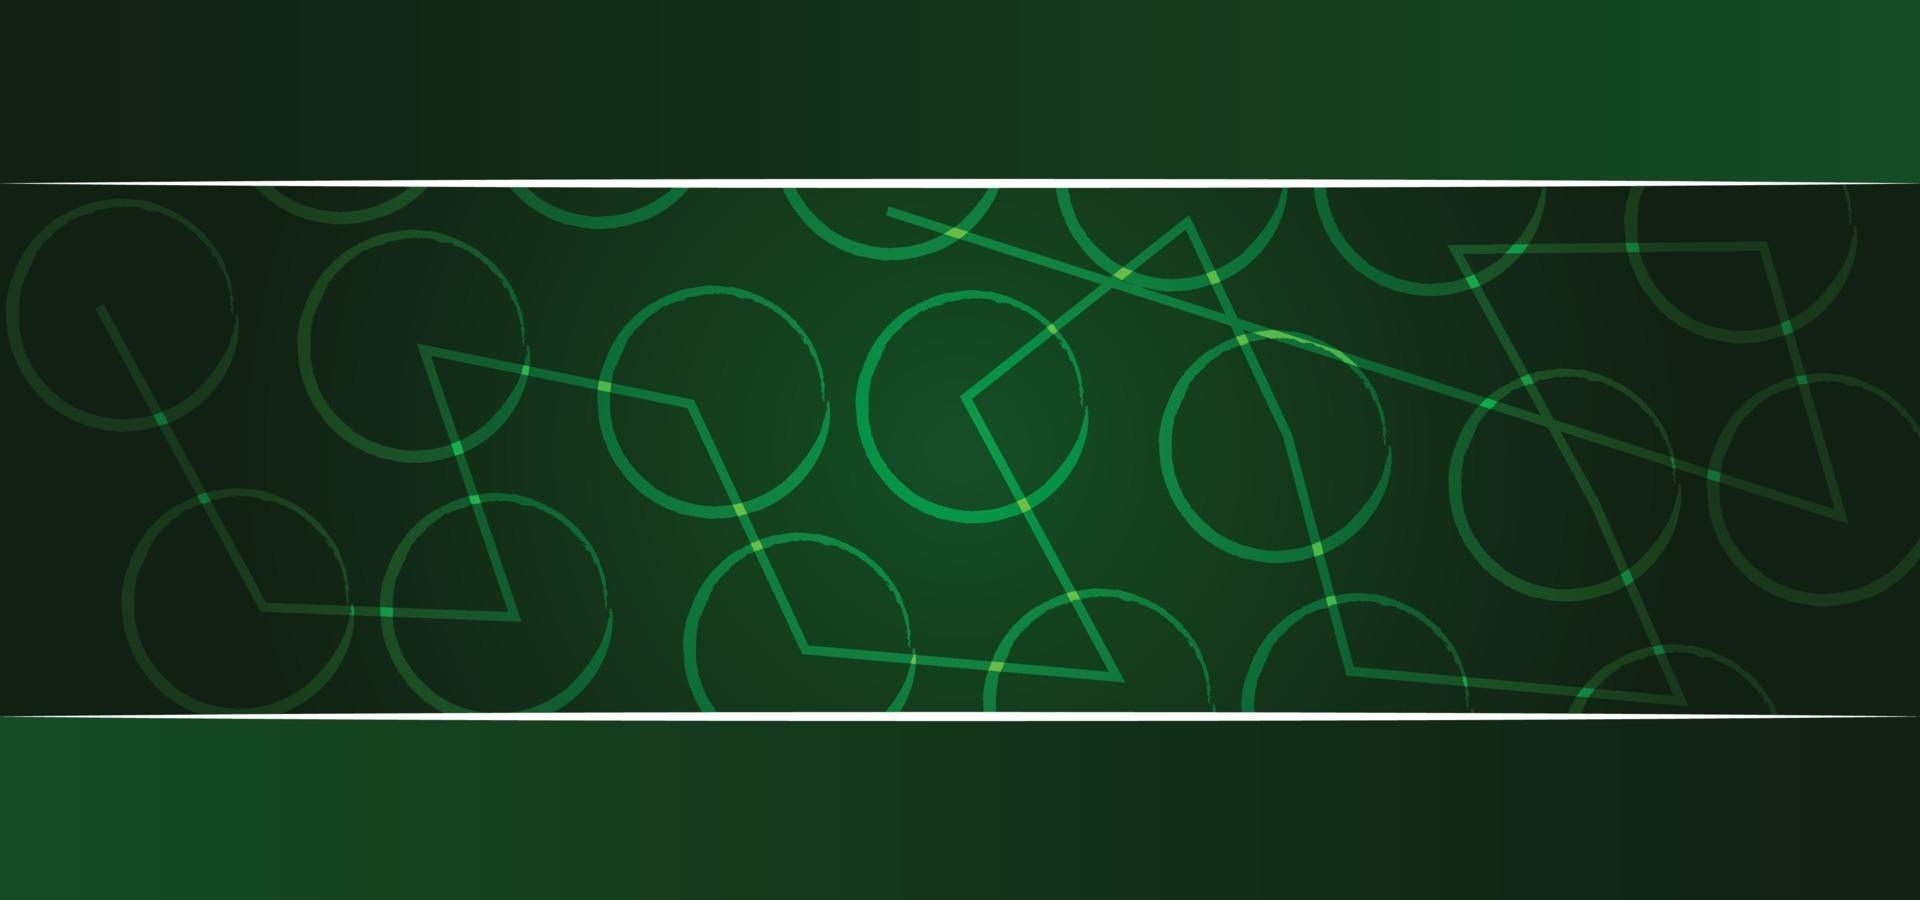 Green geometric pattern beautiful background or banner vector